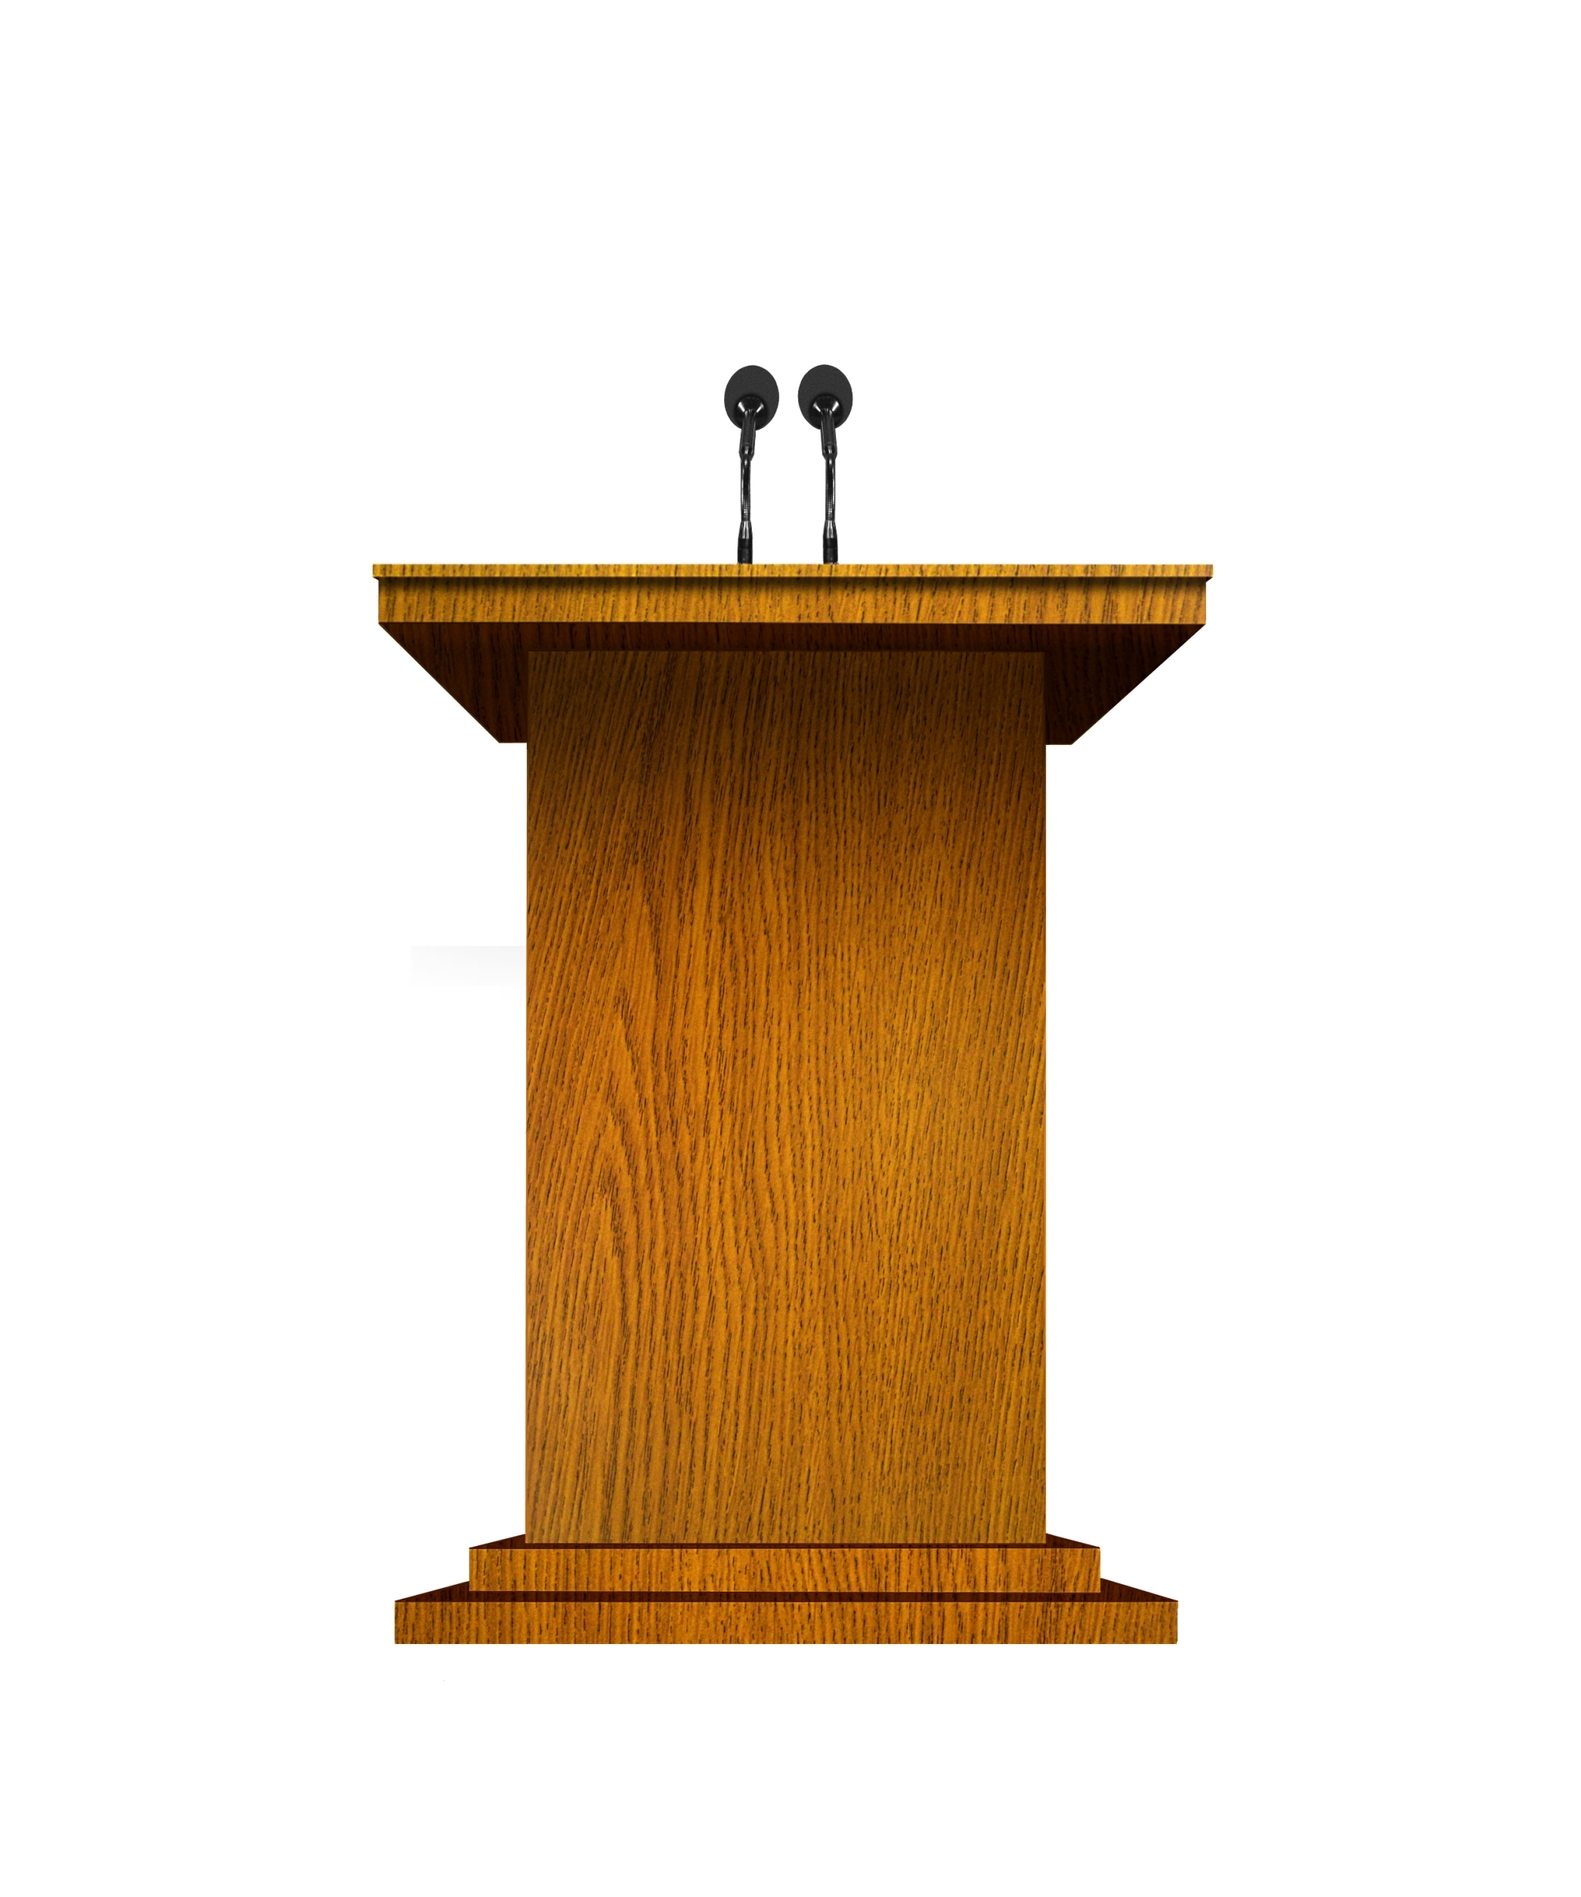 Speech podium clipart black and white download President Podium Cliparts - Cliparts Zone black and white download